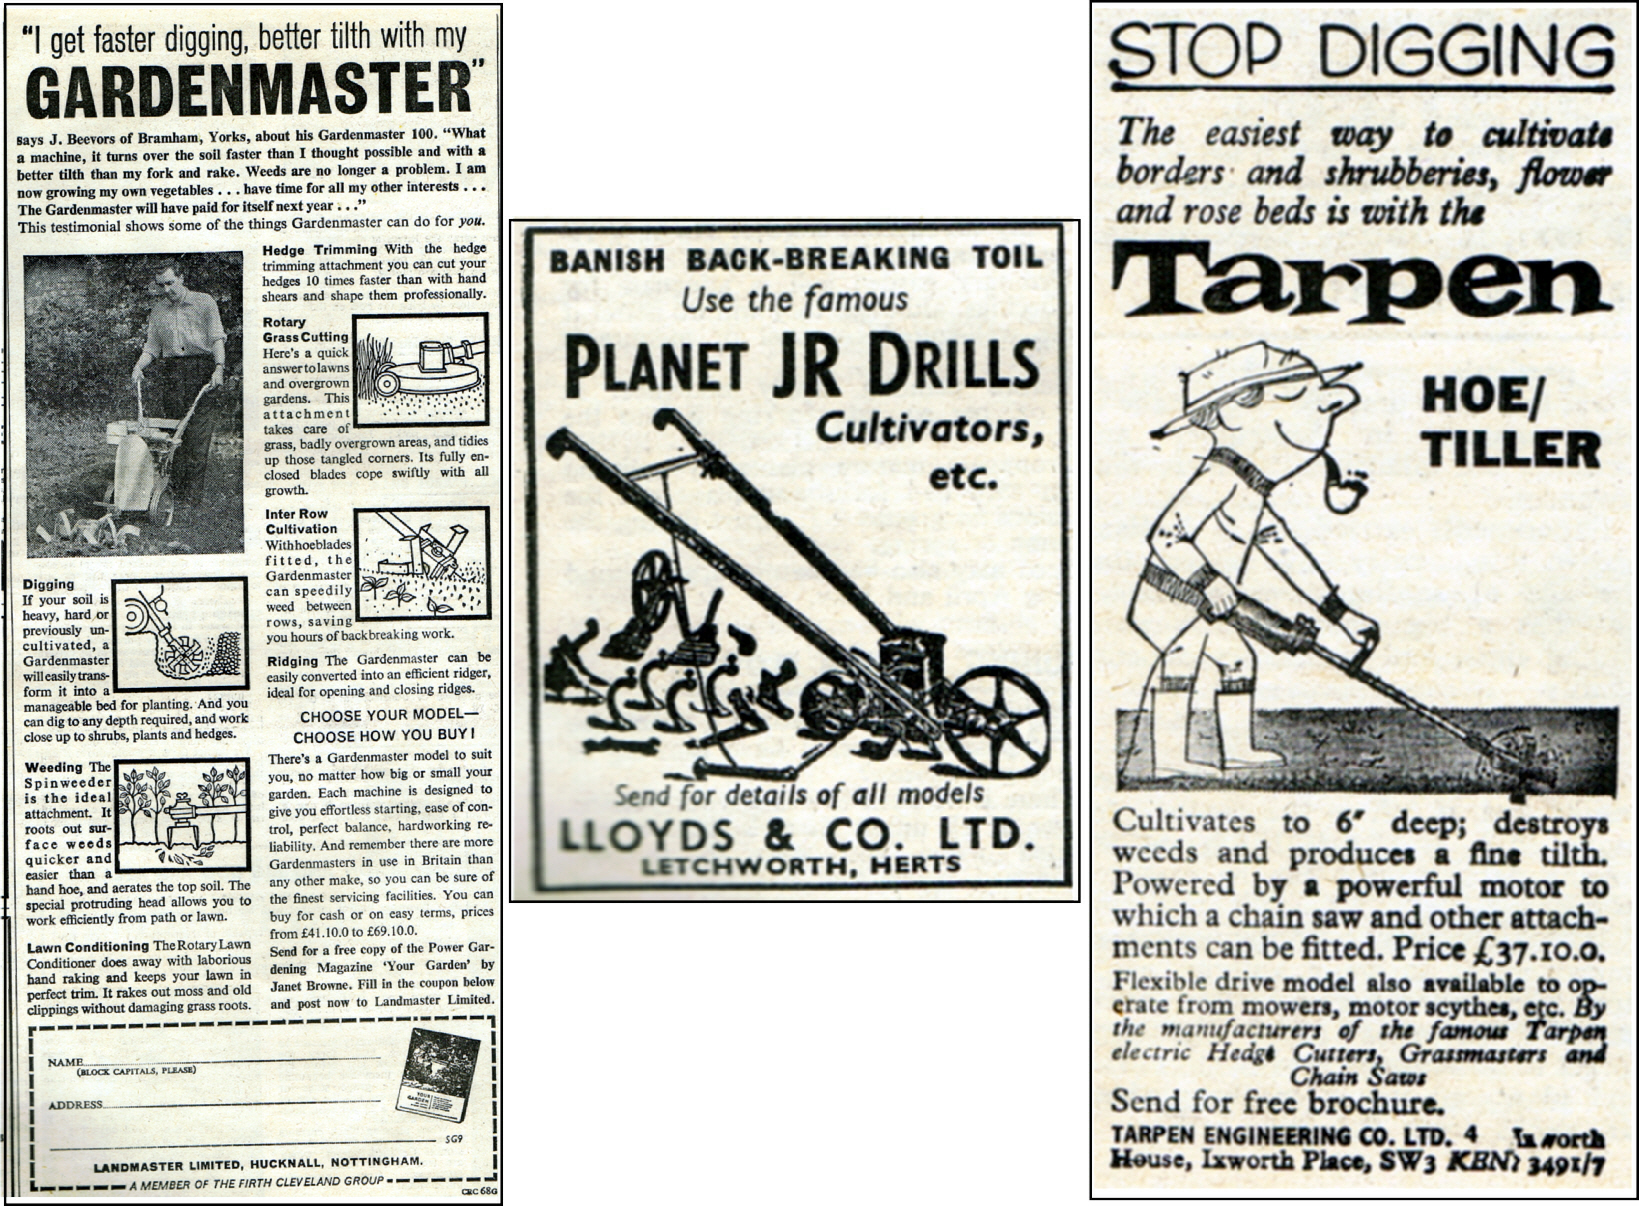 Gardenmaster Limited, Planet JR Drills and Tarpen Hoe in 1964